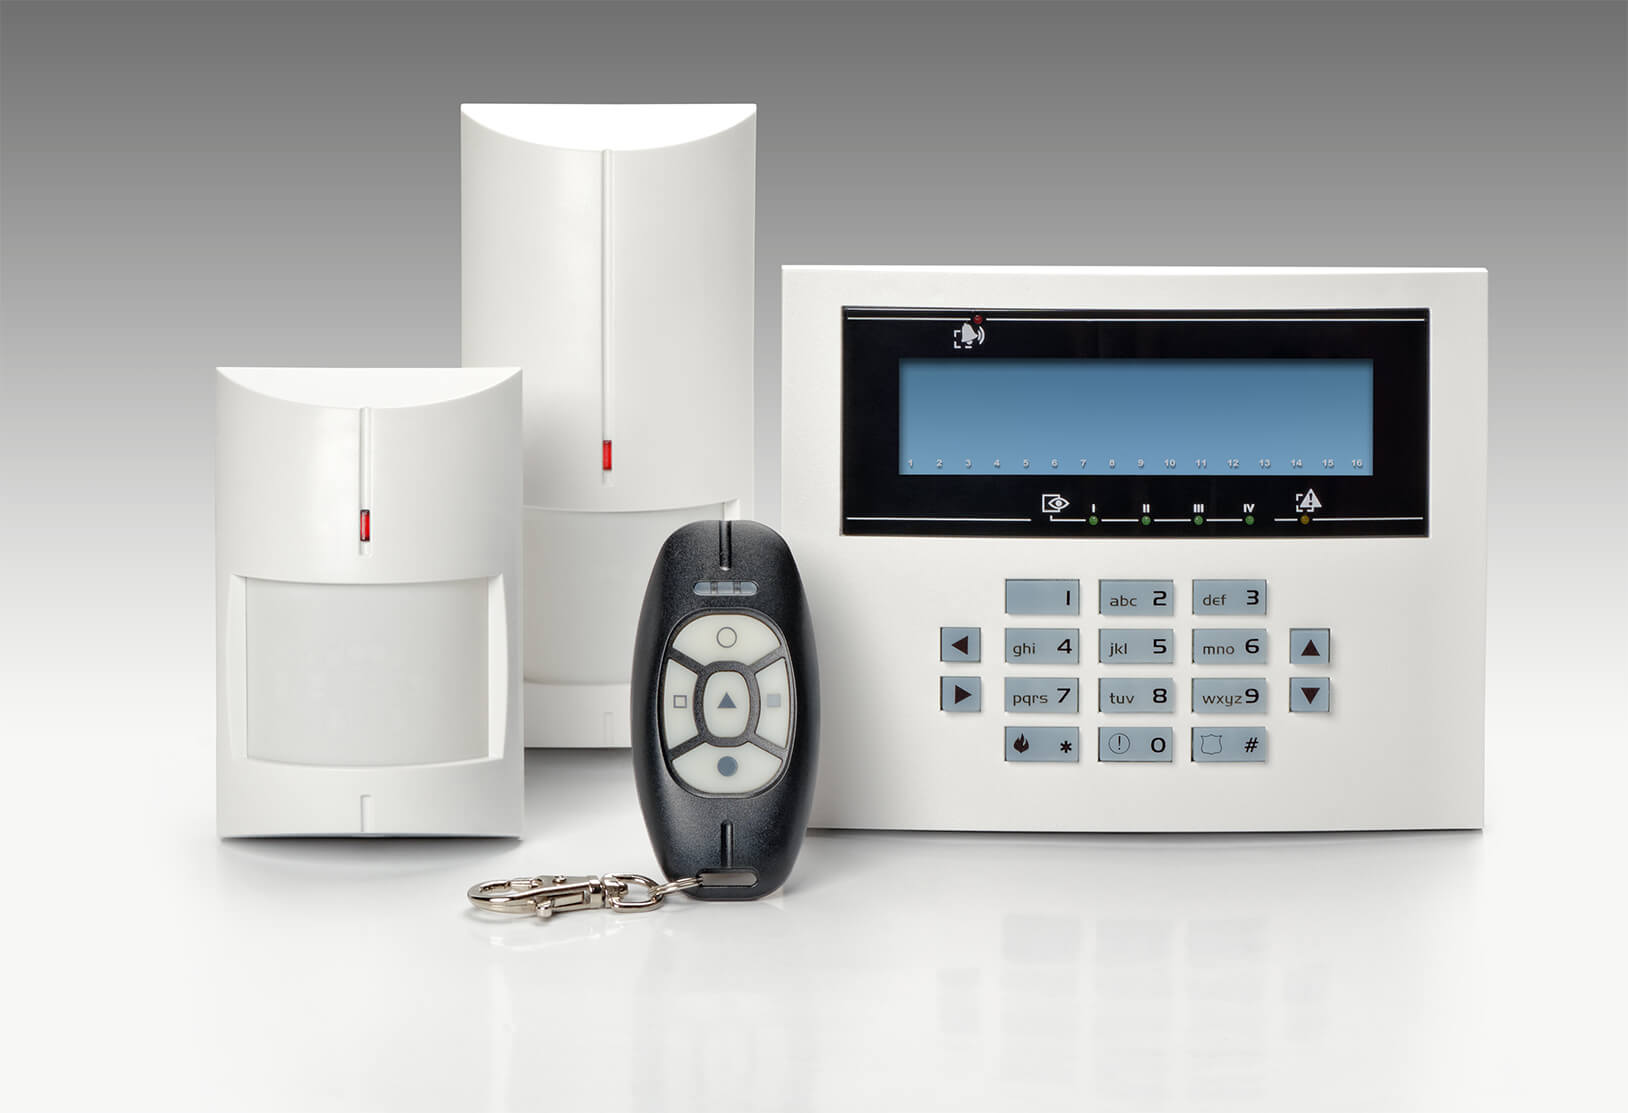 Commercial Burglar Alarms For Business in Deptford SE16  - Local Deptford SE16 burglar alarm company.Call 02078872244 - Dedicated to Safety & Security. Companies, shops and homes ..